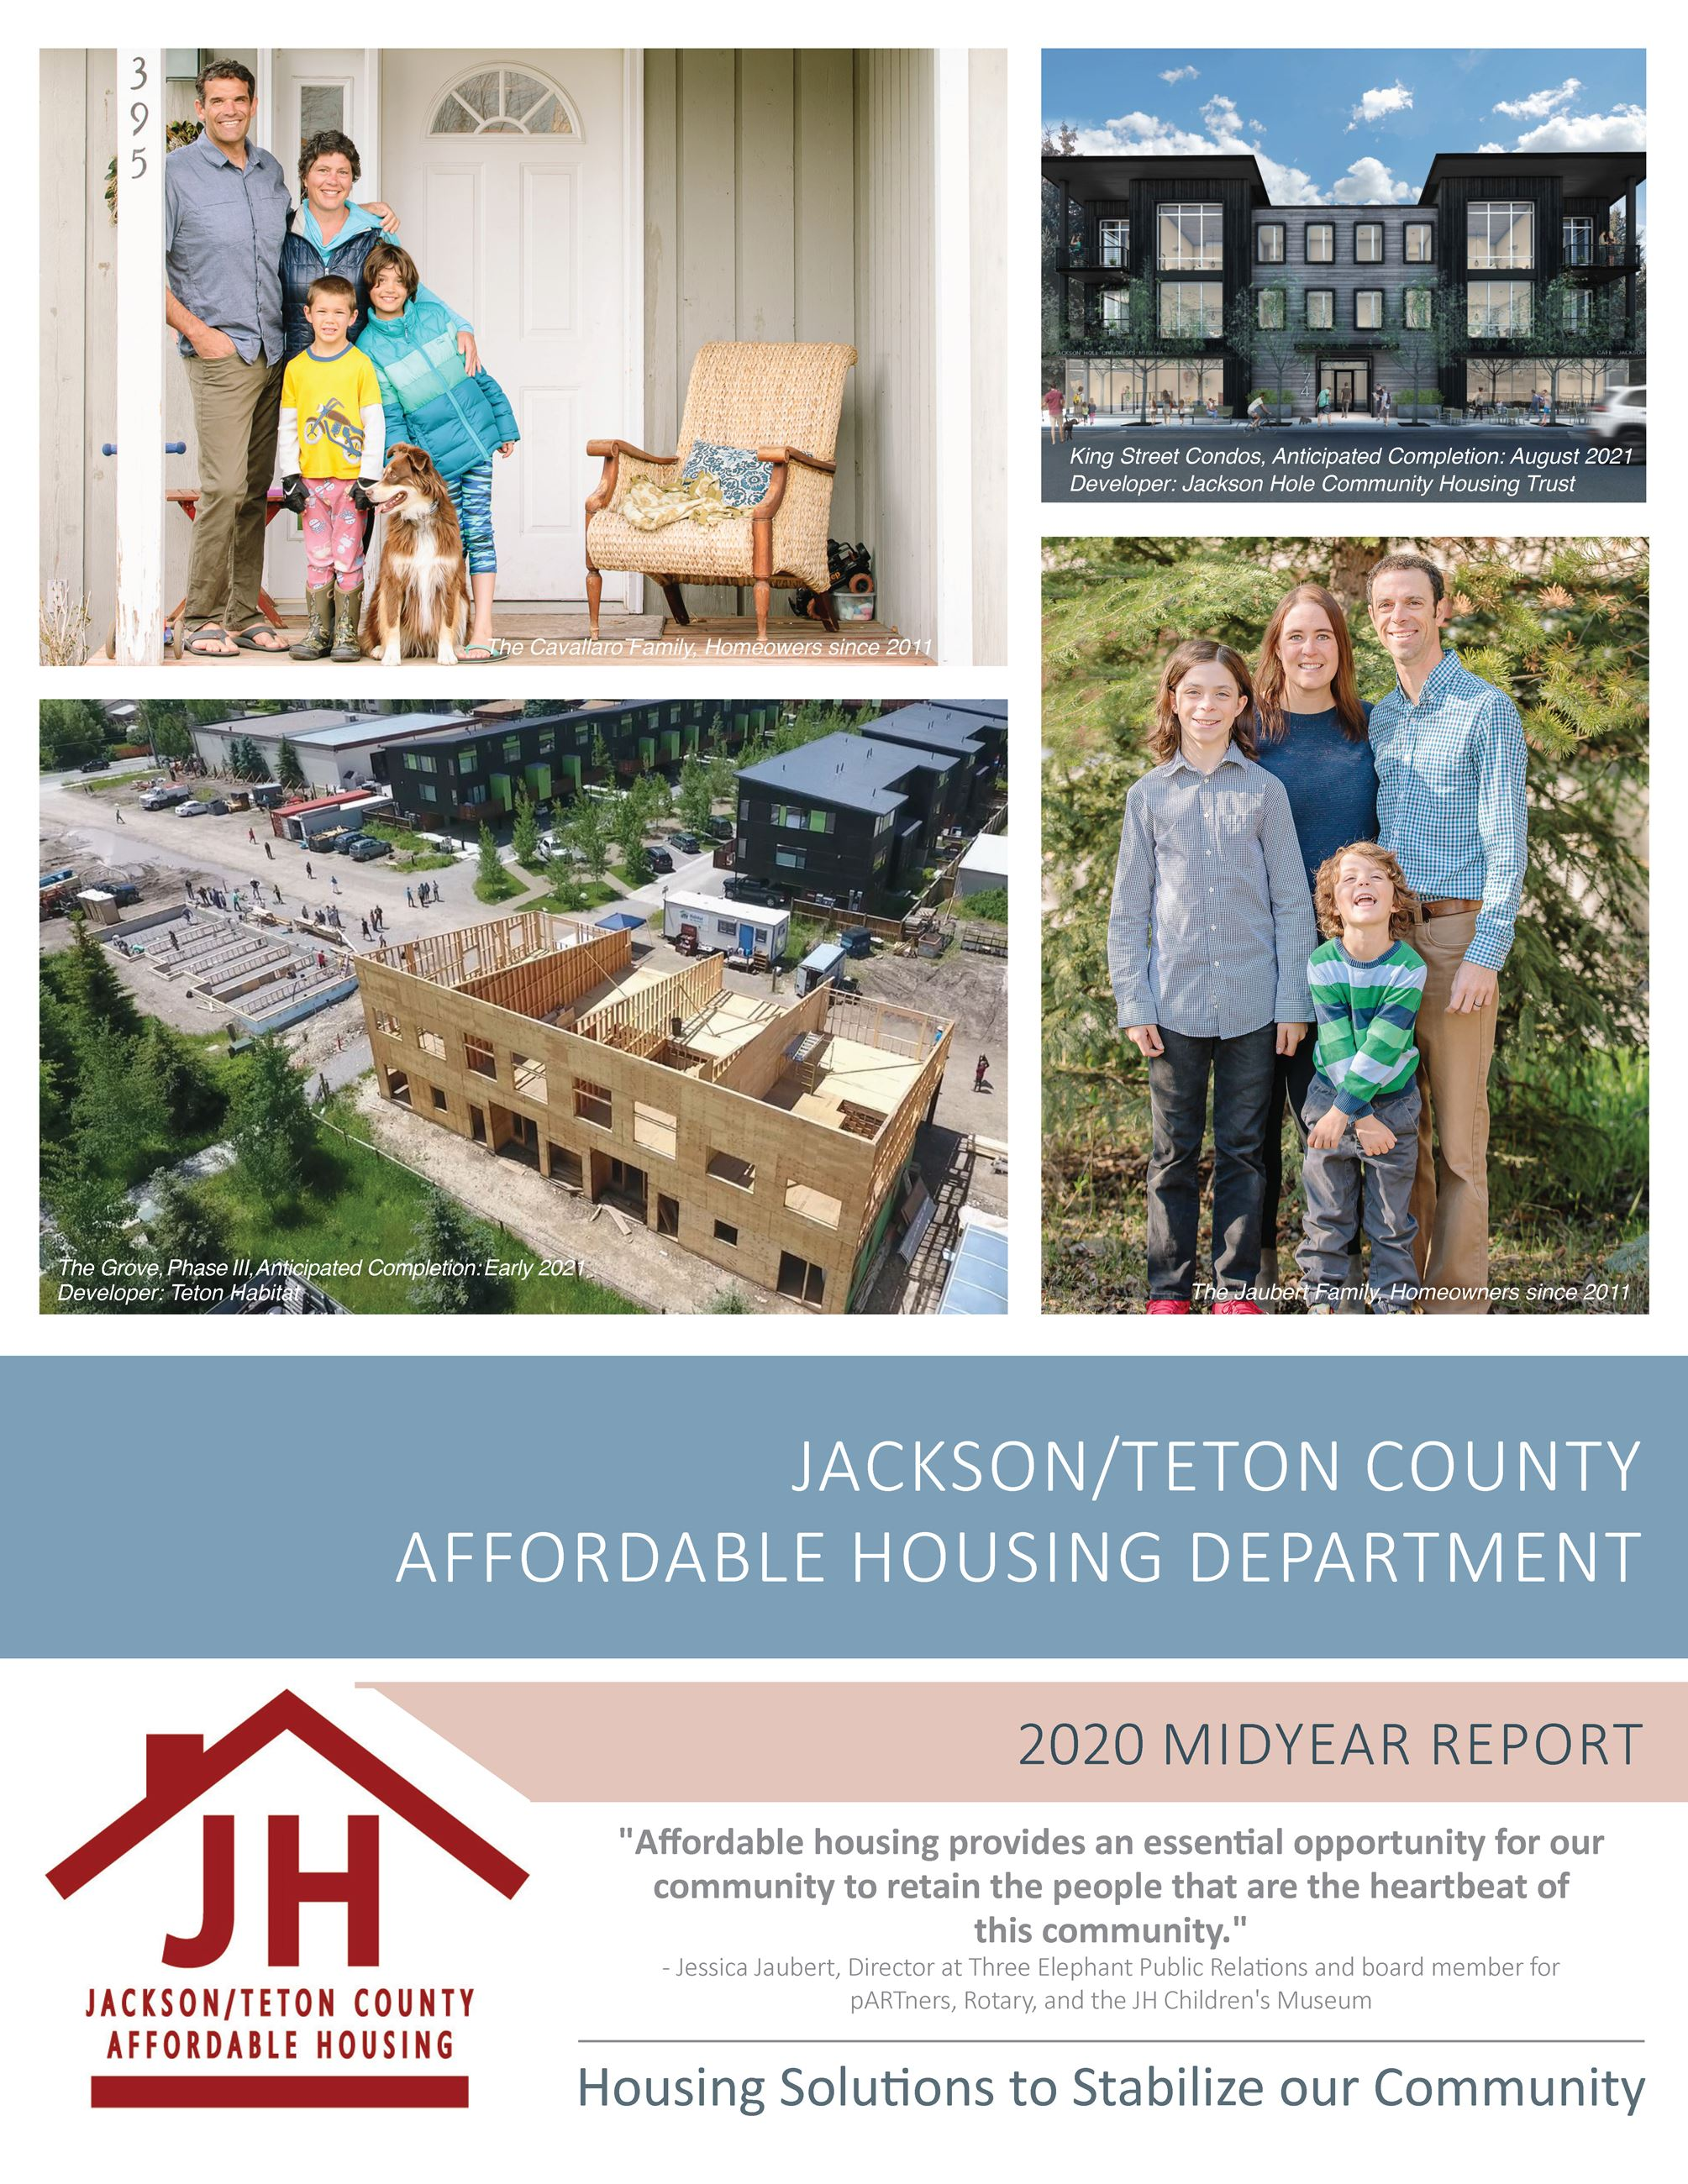 2020 Housing Midyear Report_Final 1 Opens in new window